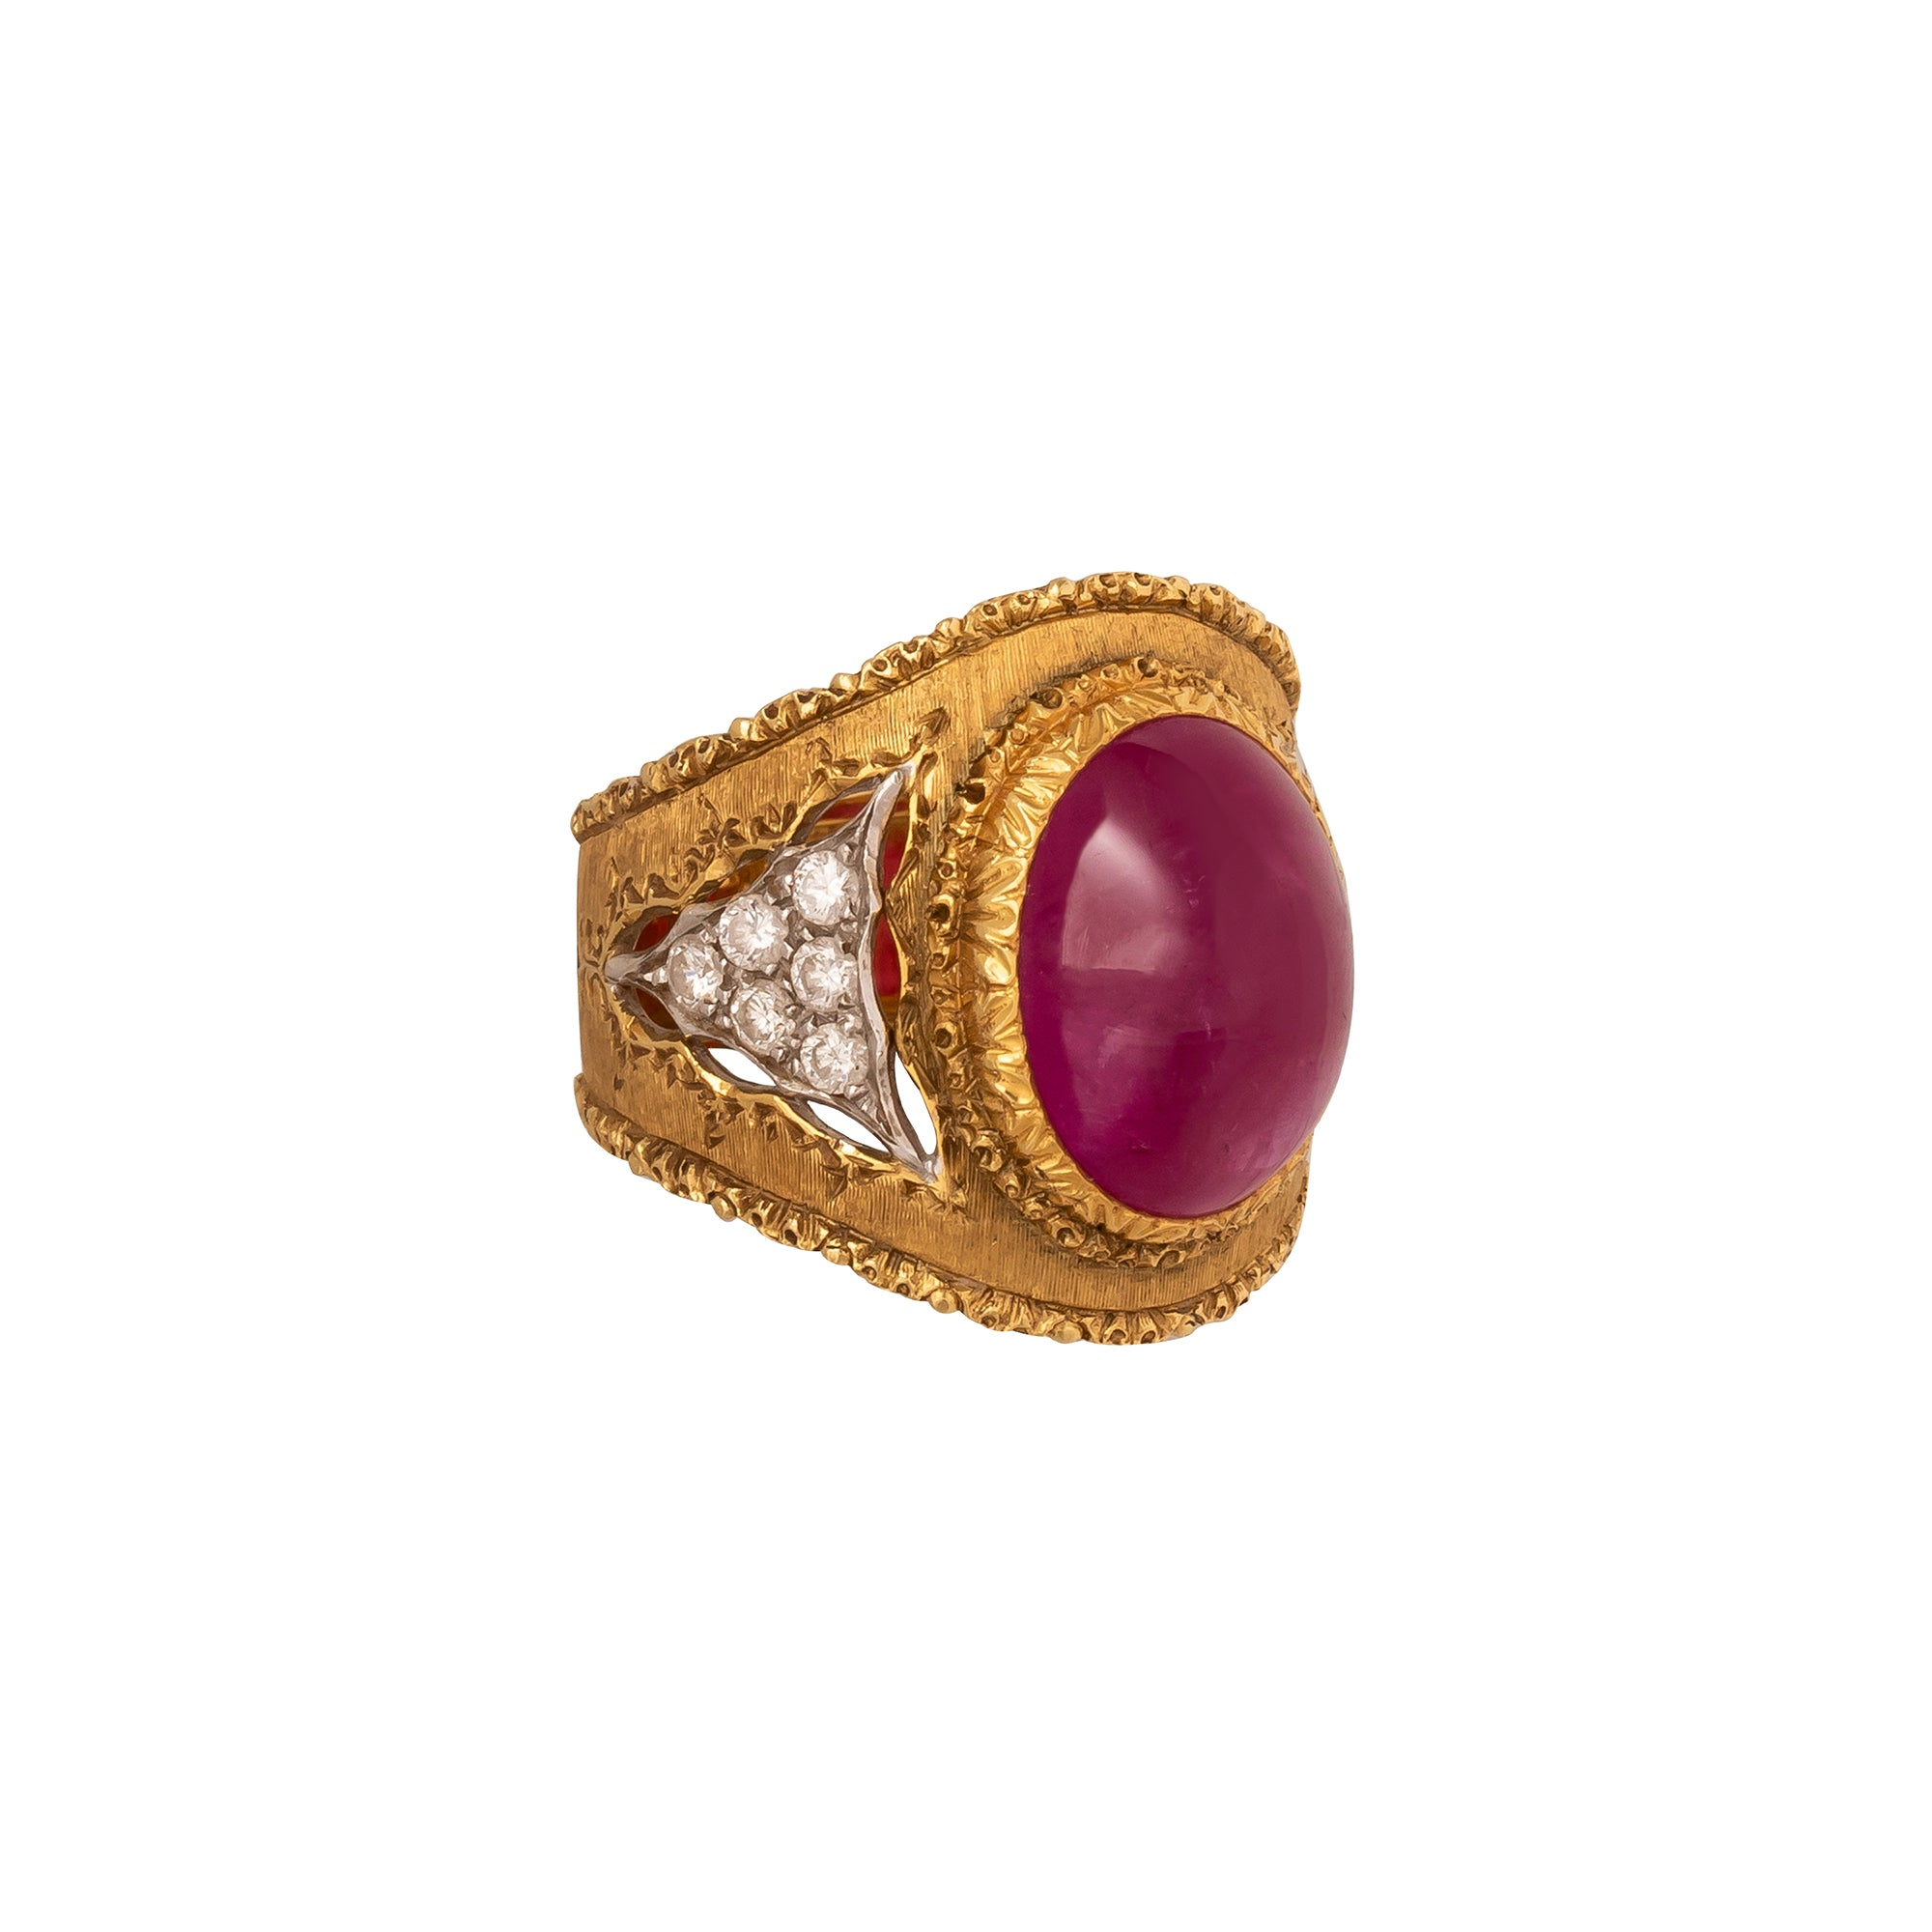 Antique & Vintage Jewelry Mario Buccellati Burma Ruby and Diamond Ring - Rings - Broken English Jewelry